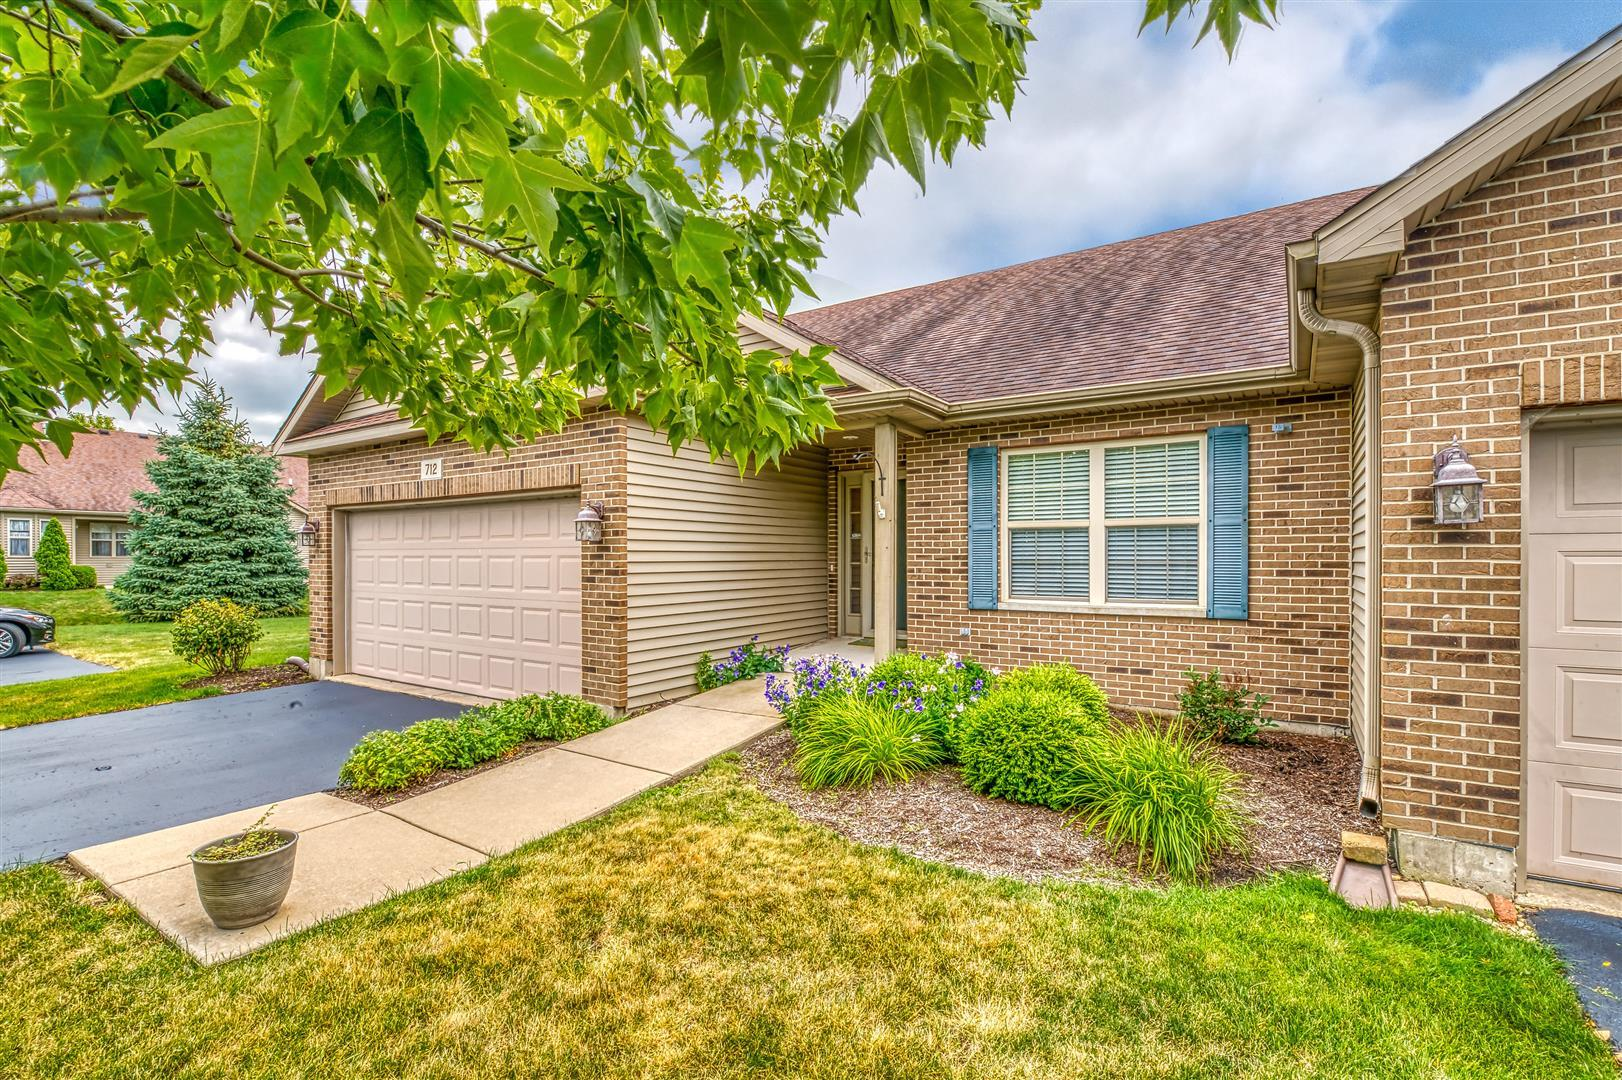 Photo for 712 Dolores Lane, SYCAMORE, IL 60178 (MLS # 10458543)